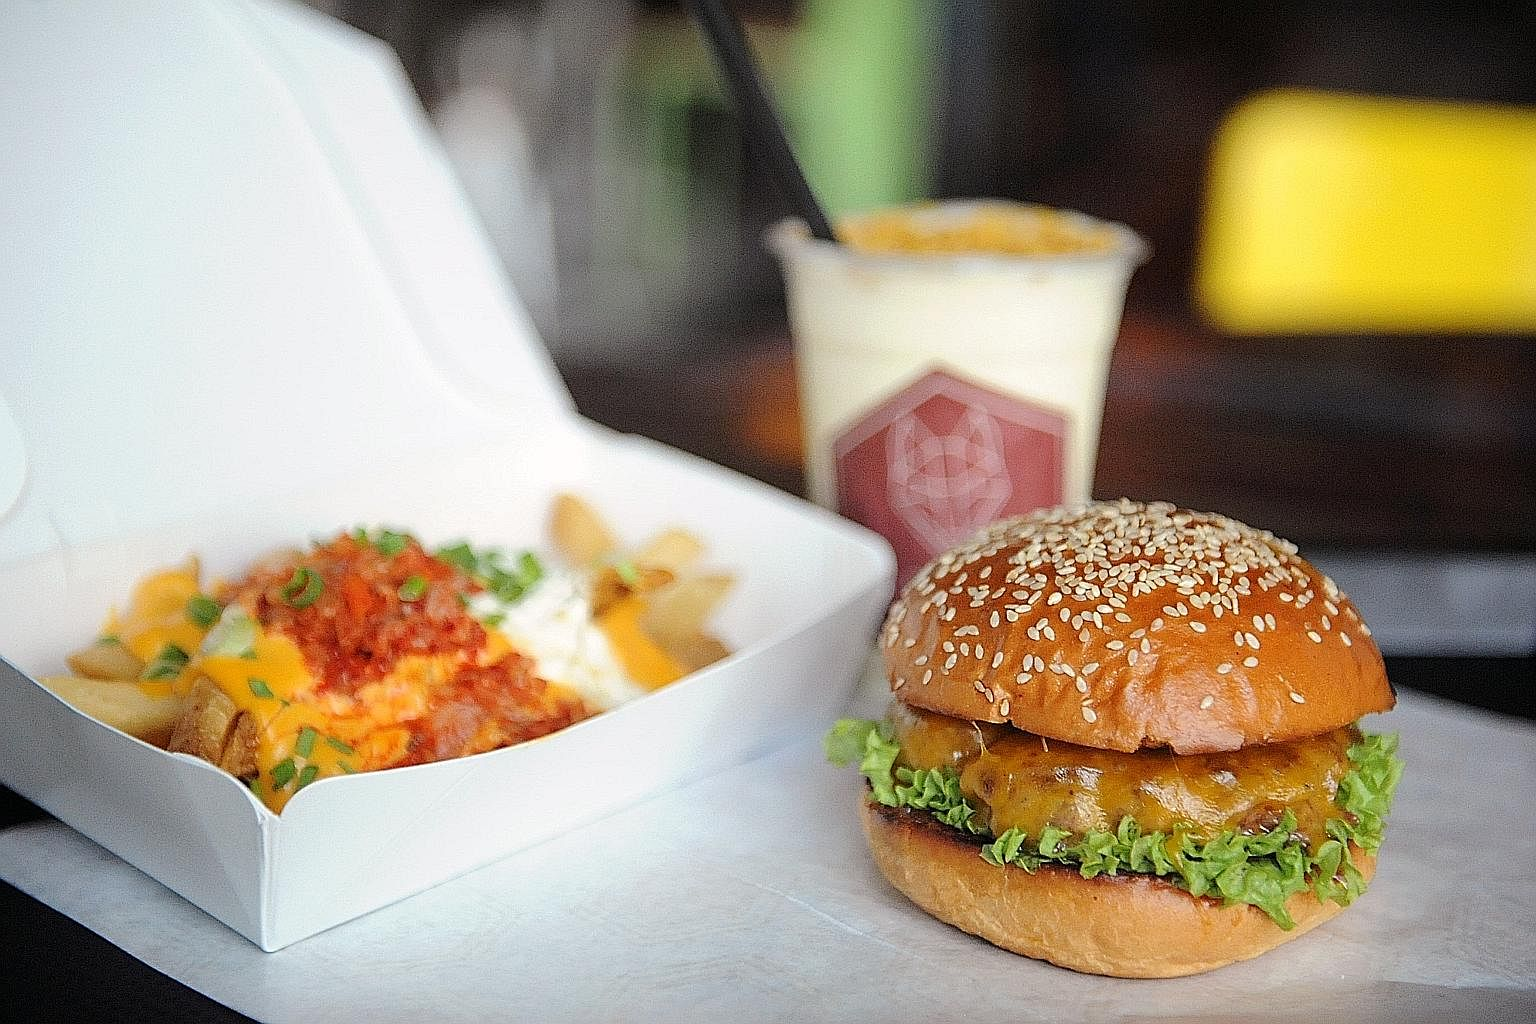 A Wolf burger from the Pasar Bella Suntec City outlet. Mr Ho Song En and Ms Serene Chua (above) made their first foray into the food business with Carvers & Co, together with Ms Sarah Lin and her husband Soh Wen Ming. Early last year, the friends lau